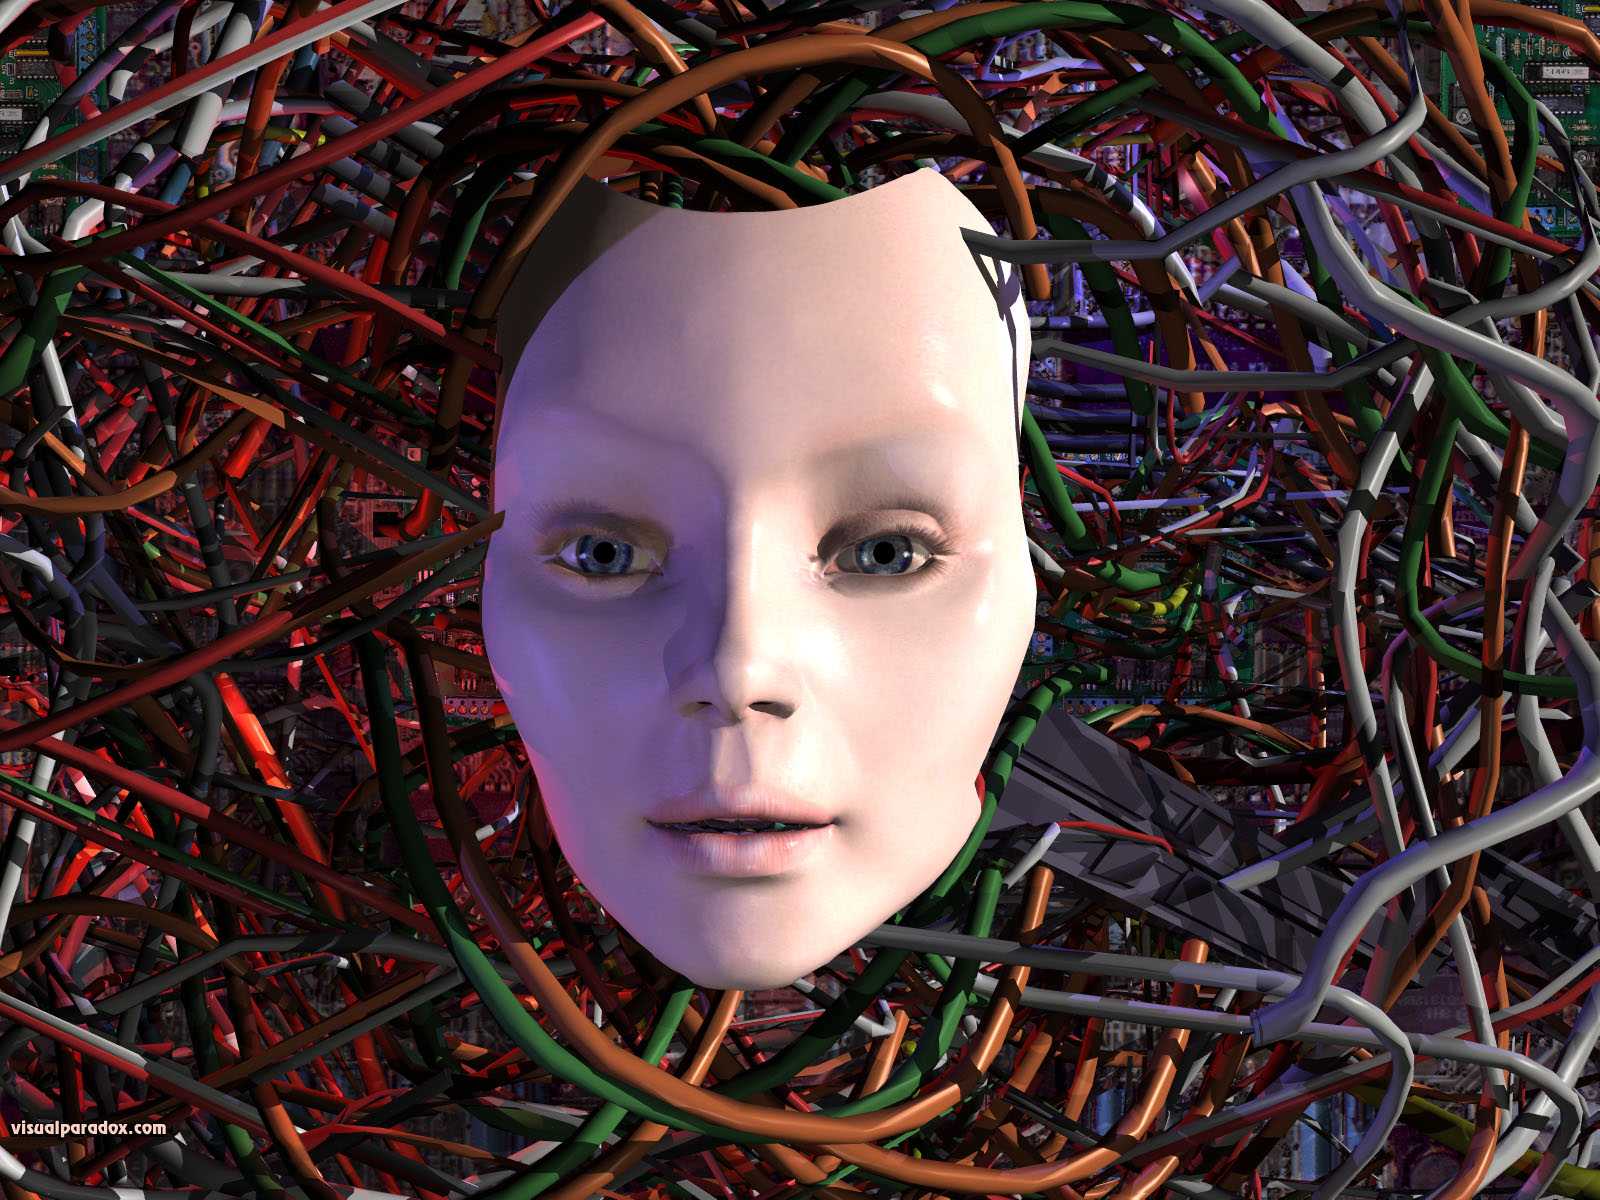 robot, computer, wires, wired, electric, female, girl, woman, AI, artificial, mechanical, electrical, 3d, wallpaper